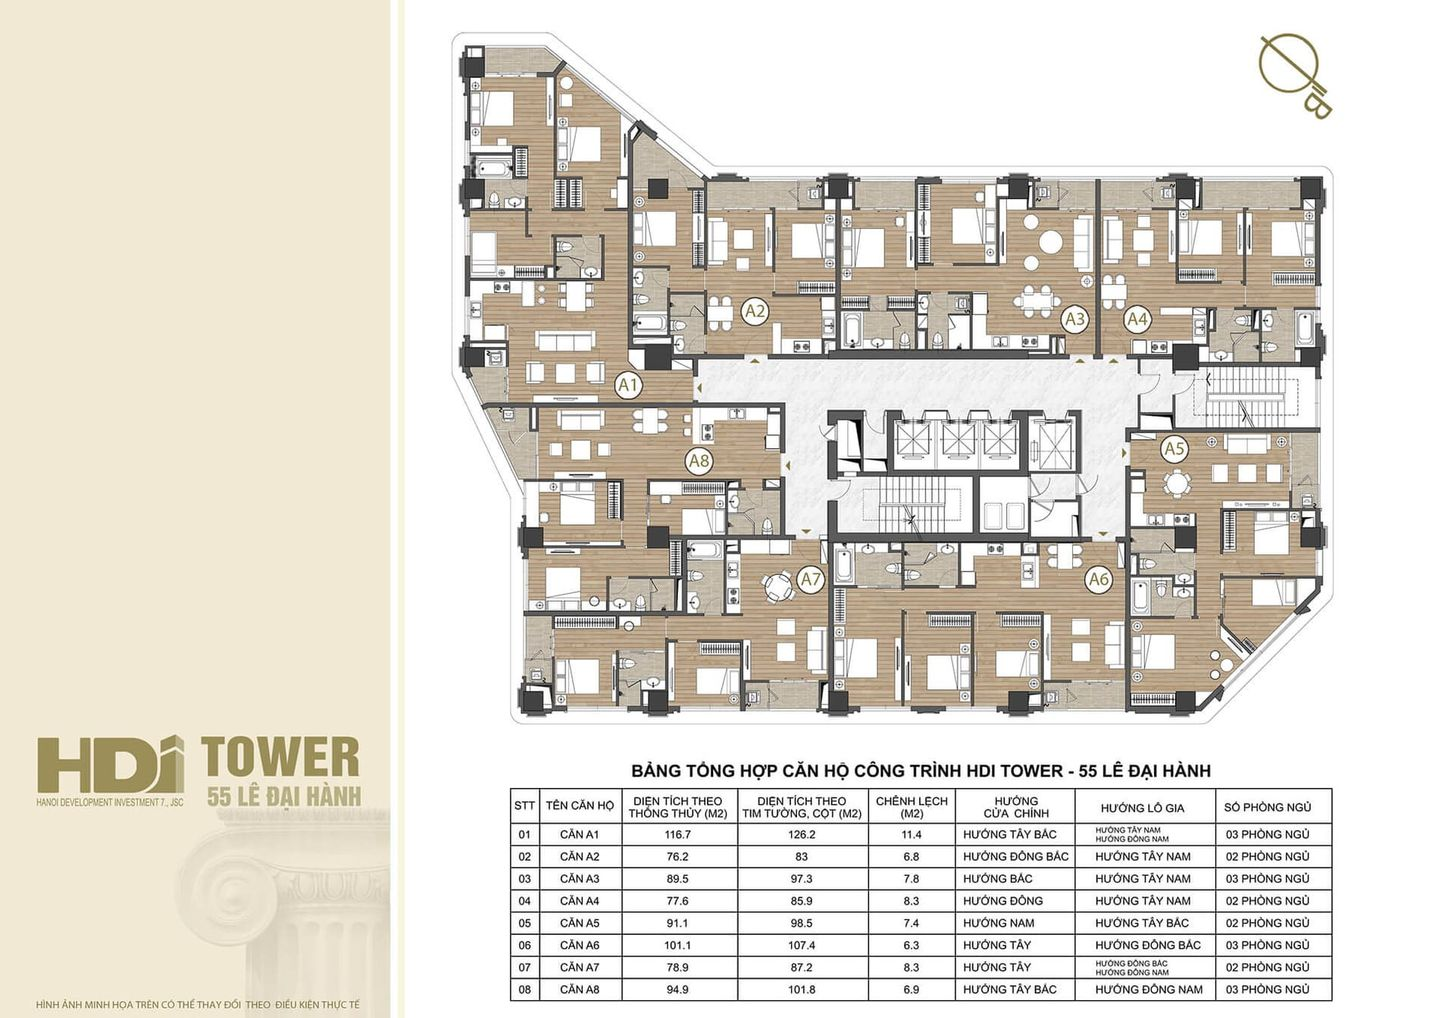 HDI TOWER PROJECT FLOOR PLAN